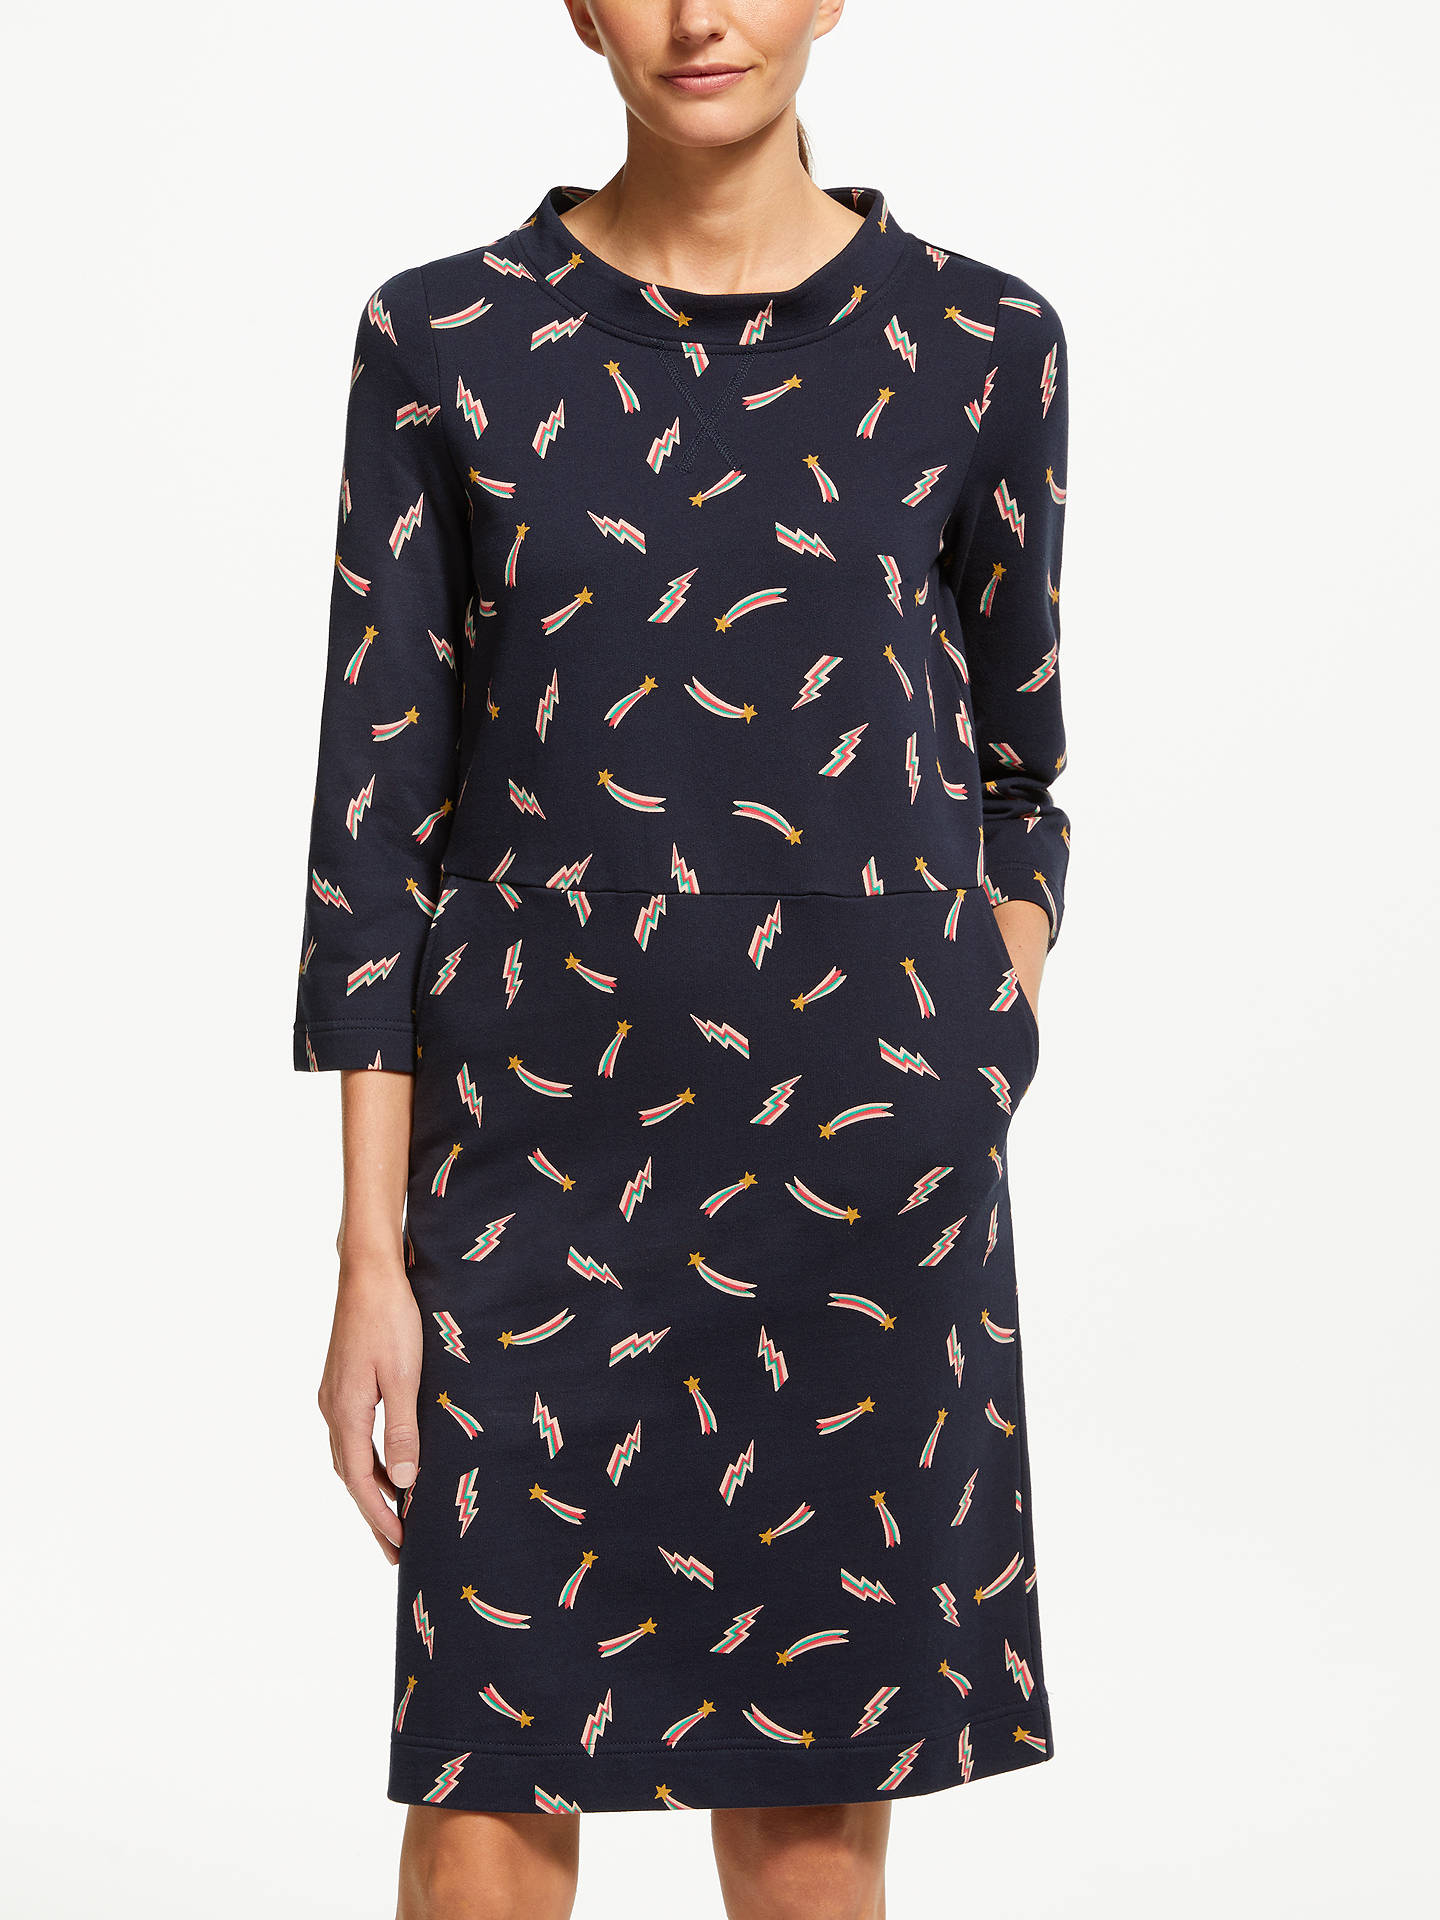 BuyBoden Livia Sweat Dress, Whale Grey Star, 18 Online at johnlewis.com